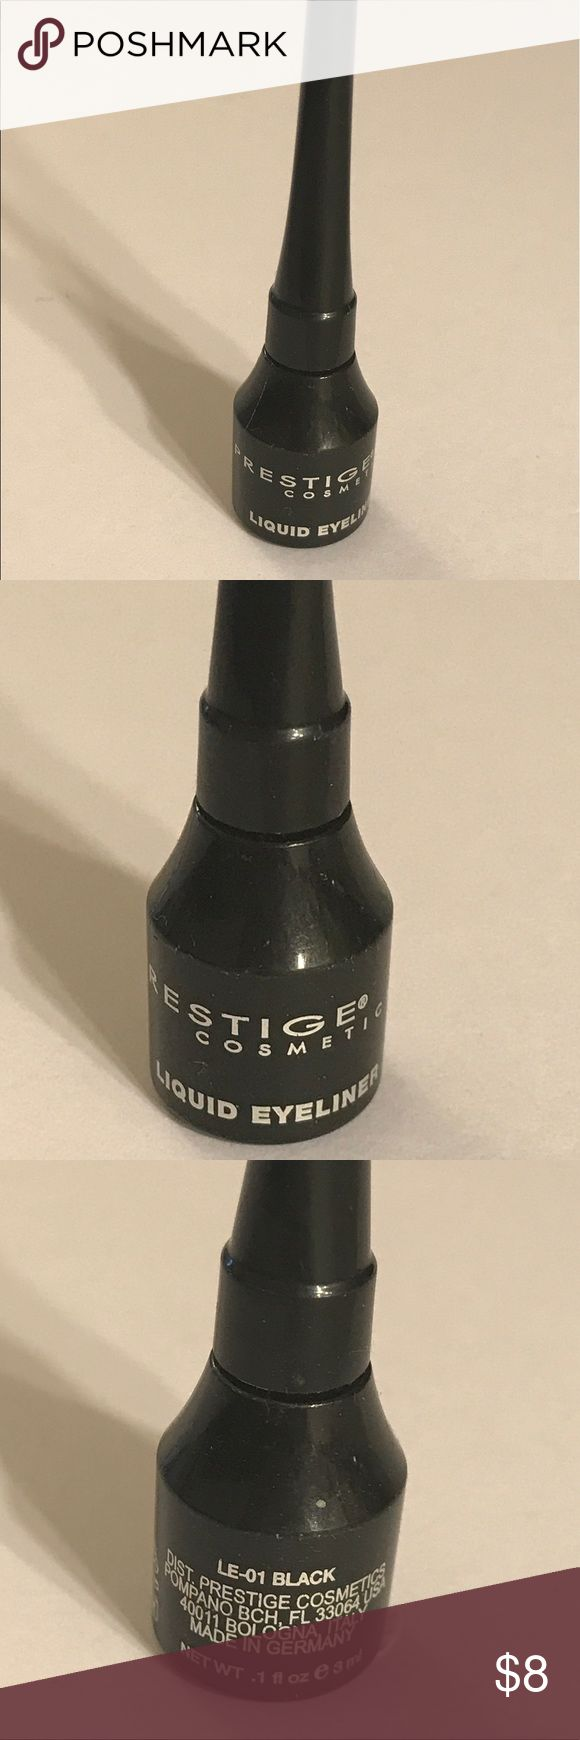 Prestige cosmetics liquid eyeliner Prestige cosmetics liquid eyeliner , color is black. Great item. Thanks for checking out Luxury1cosmetics! Offers are welcomed, bundles are discounted. Used, made in Germany. prestige cosmetics Makeup Eyeliner